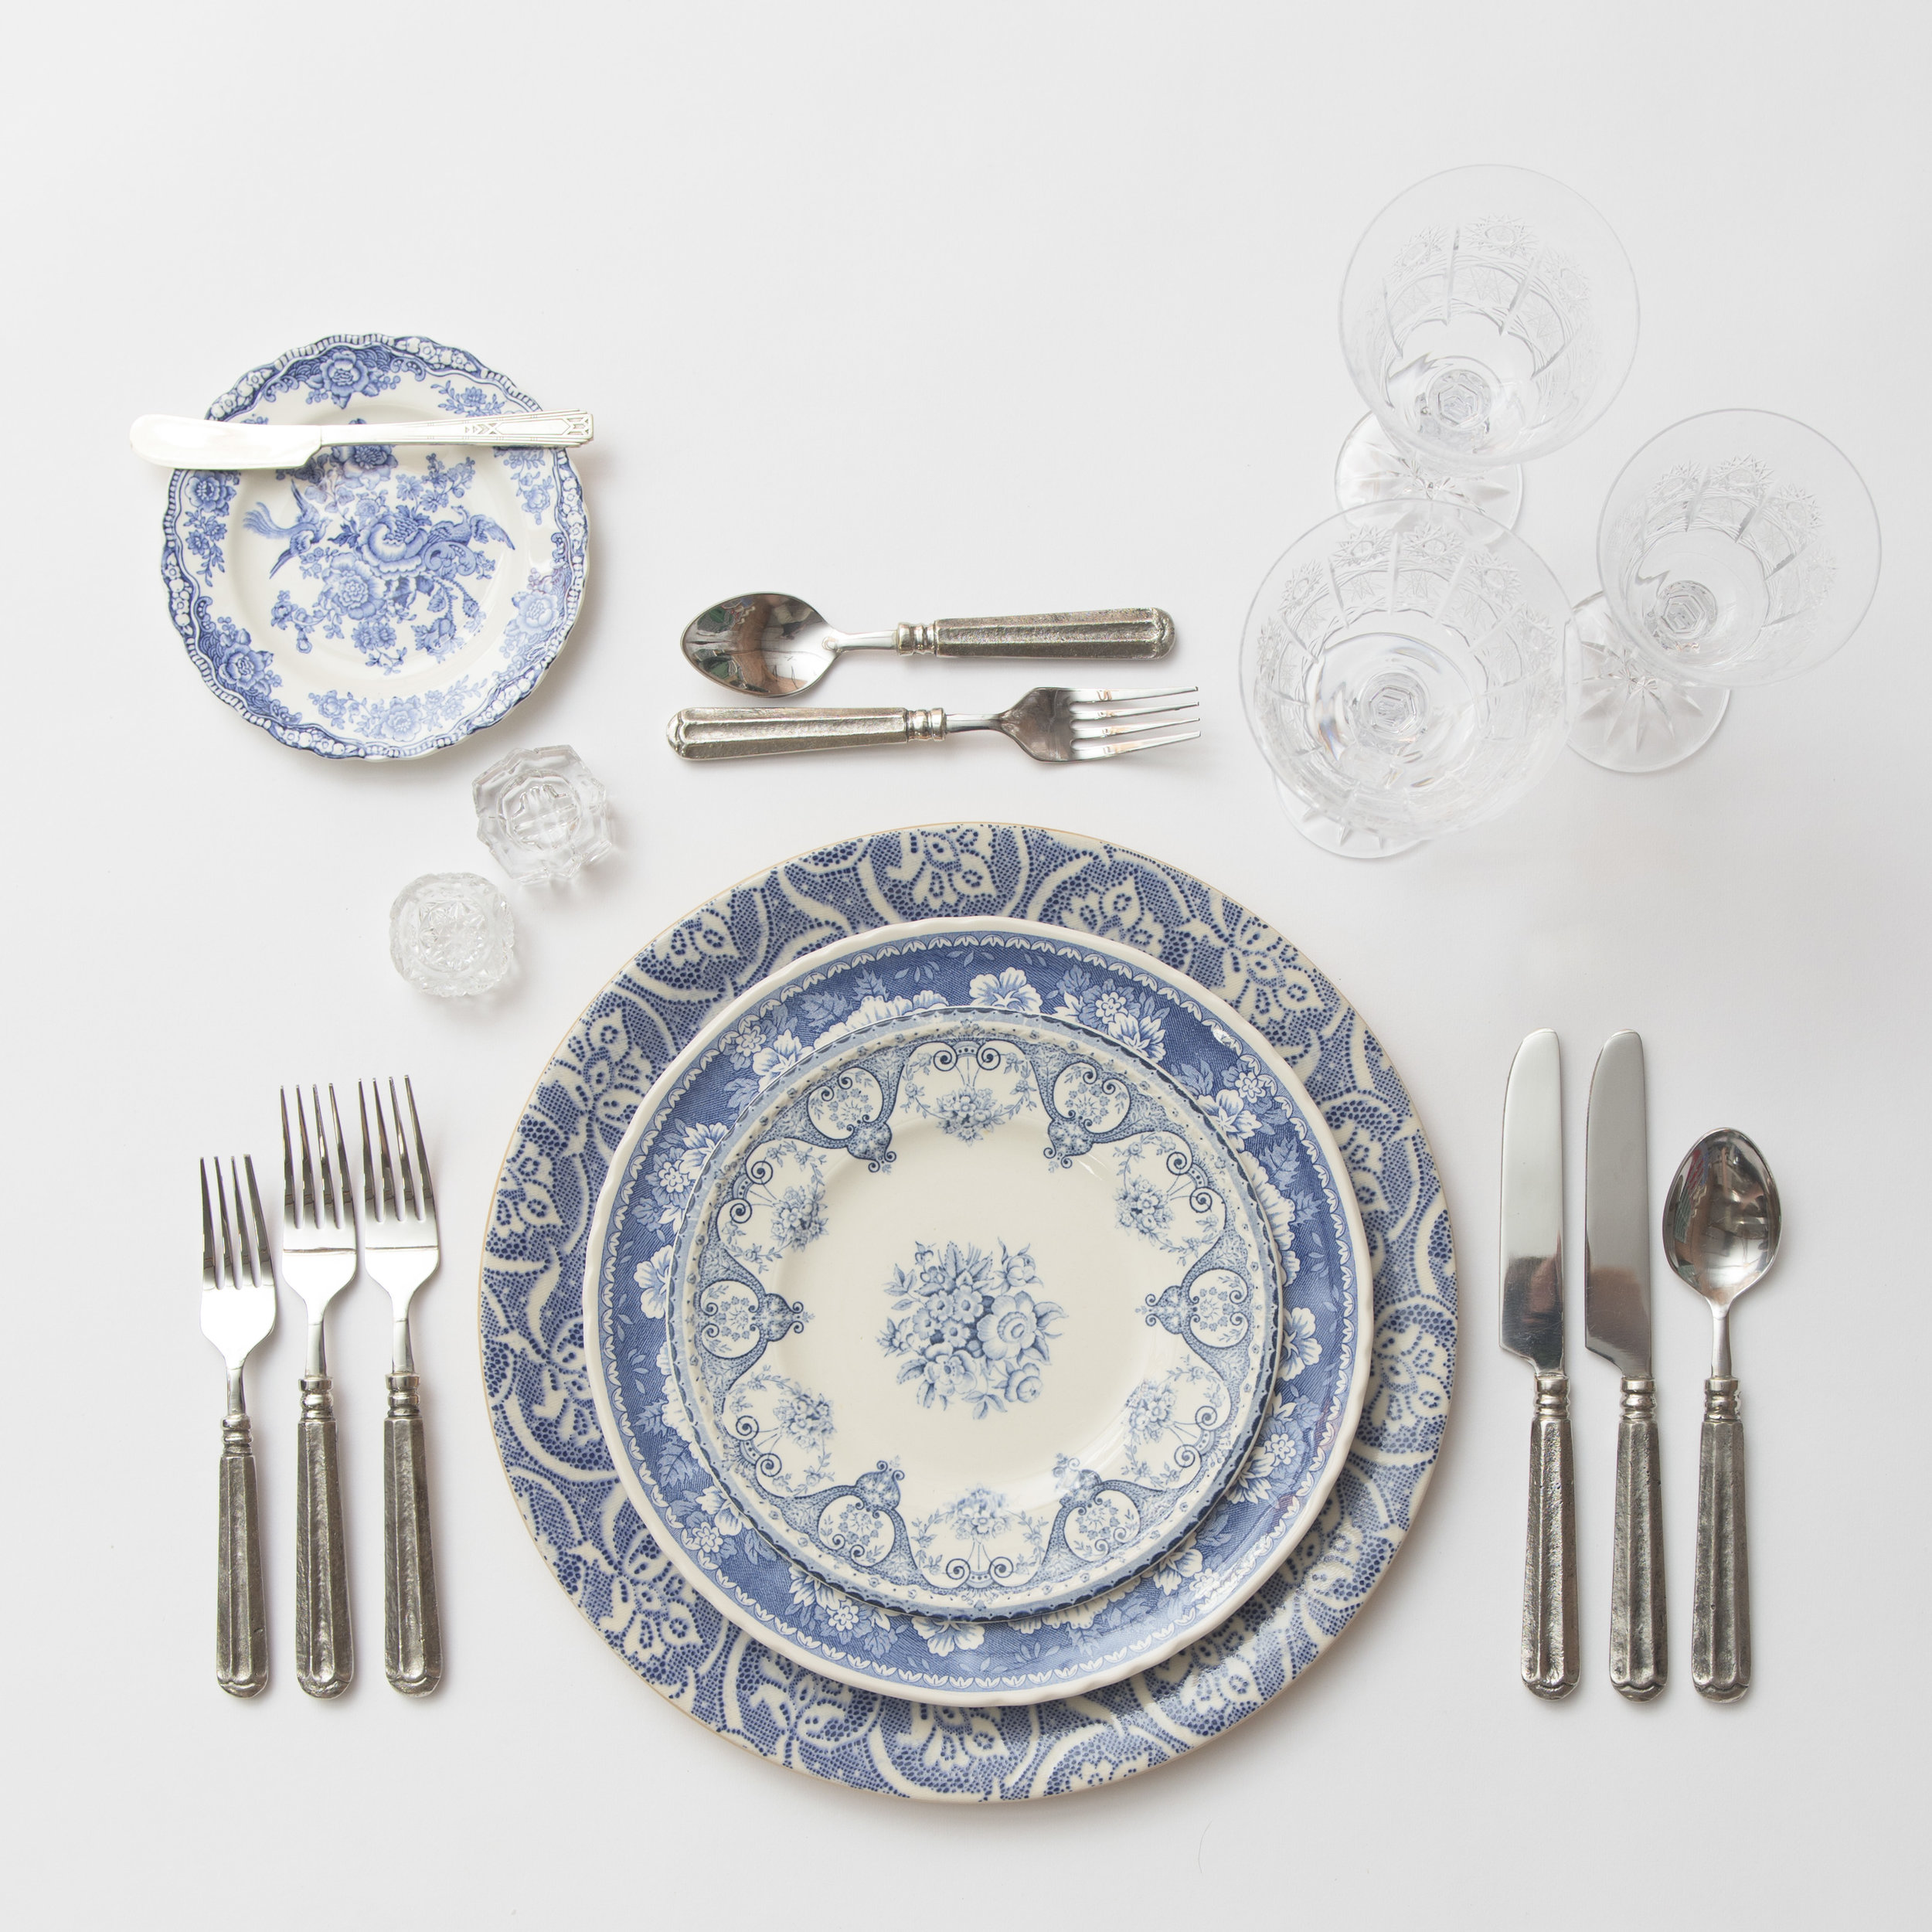 RENT: Blue Fleur de Lis Chargers + Blue Garden Collection Vintage China + Tuscan Flatware in Pewter + Czech Crystal Stemware + Antique Crystal Salt Cellars